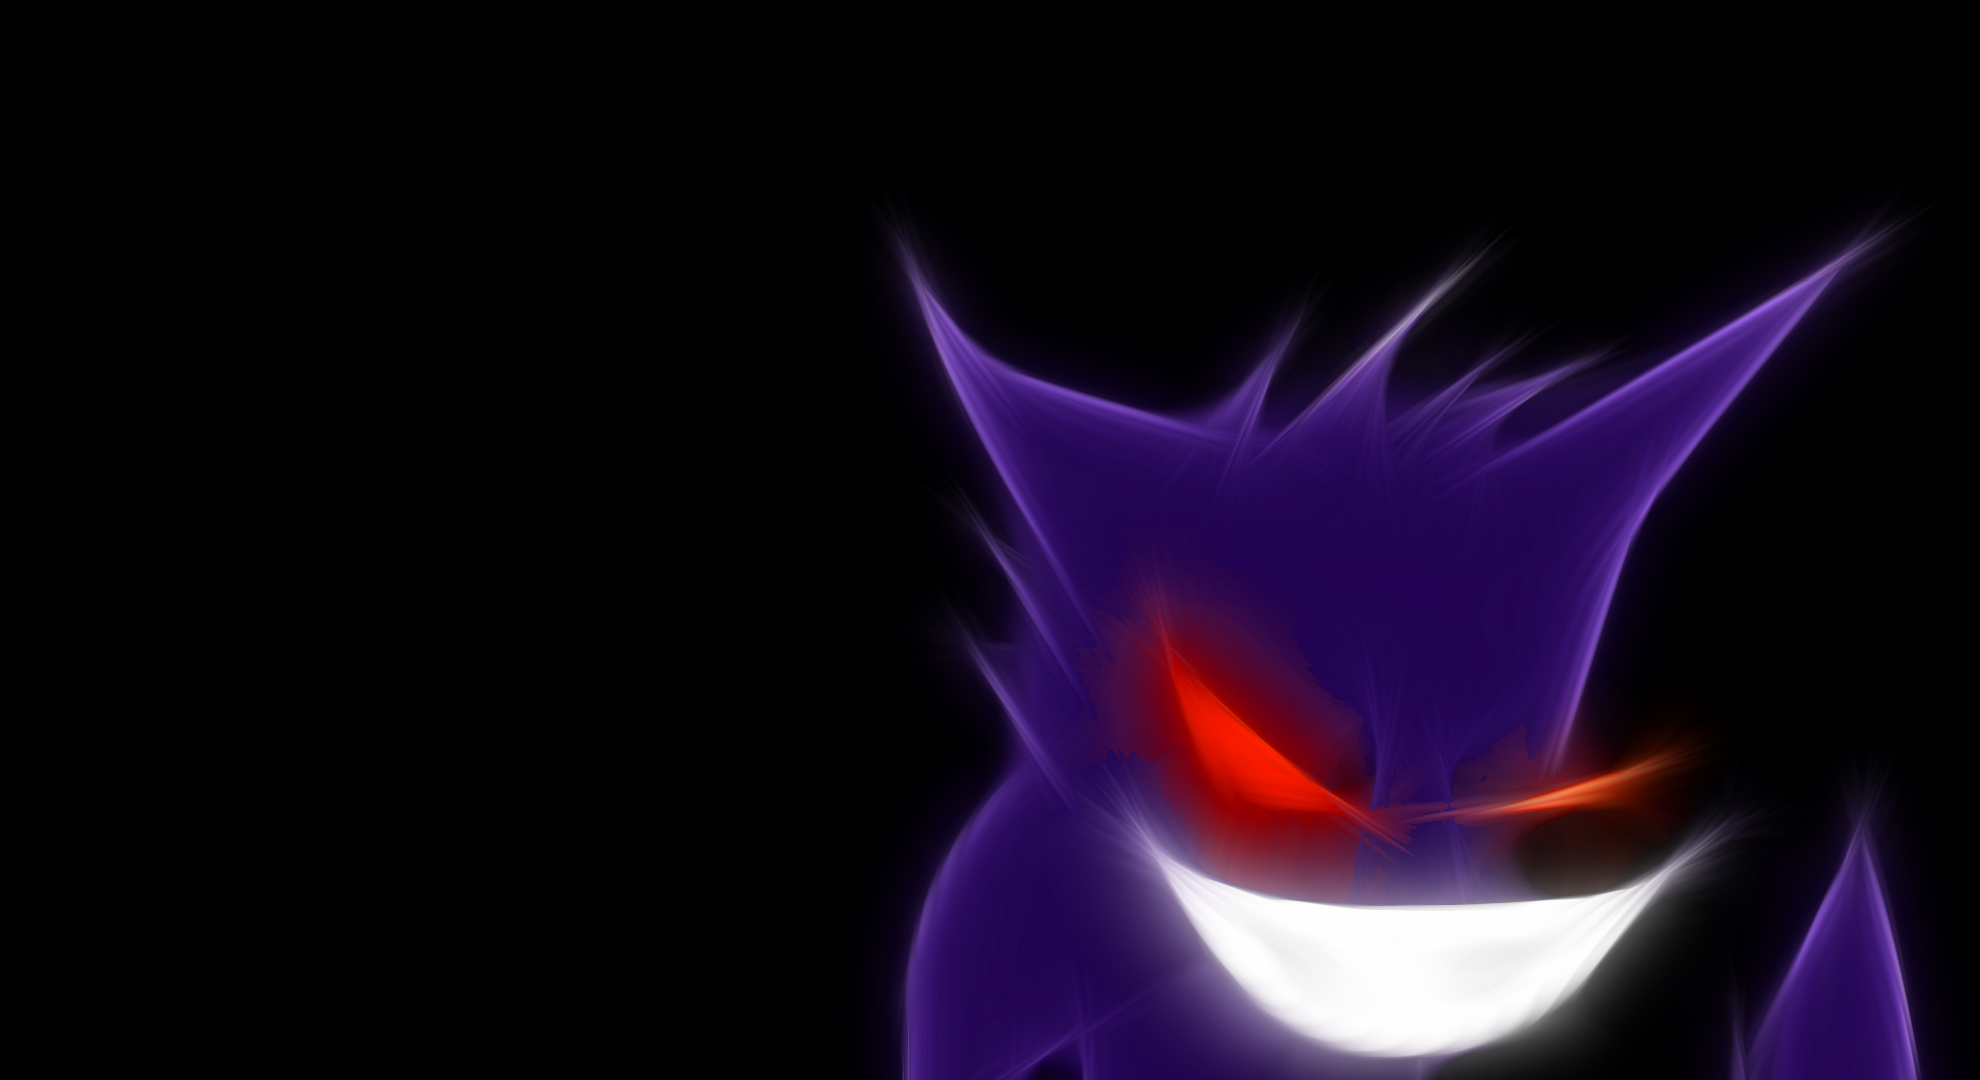 094 gengar by poketrainermanro fan art wallpaper games 2013 2015 1980x1080